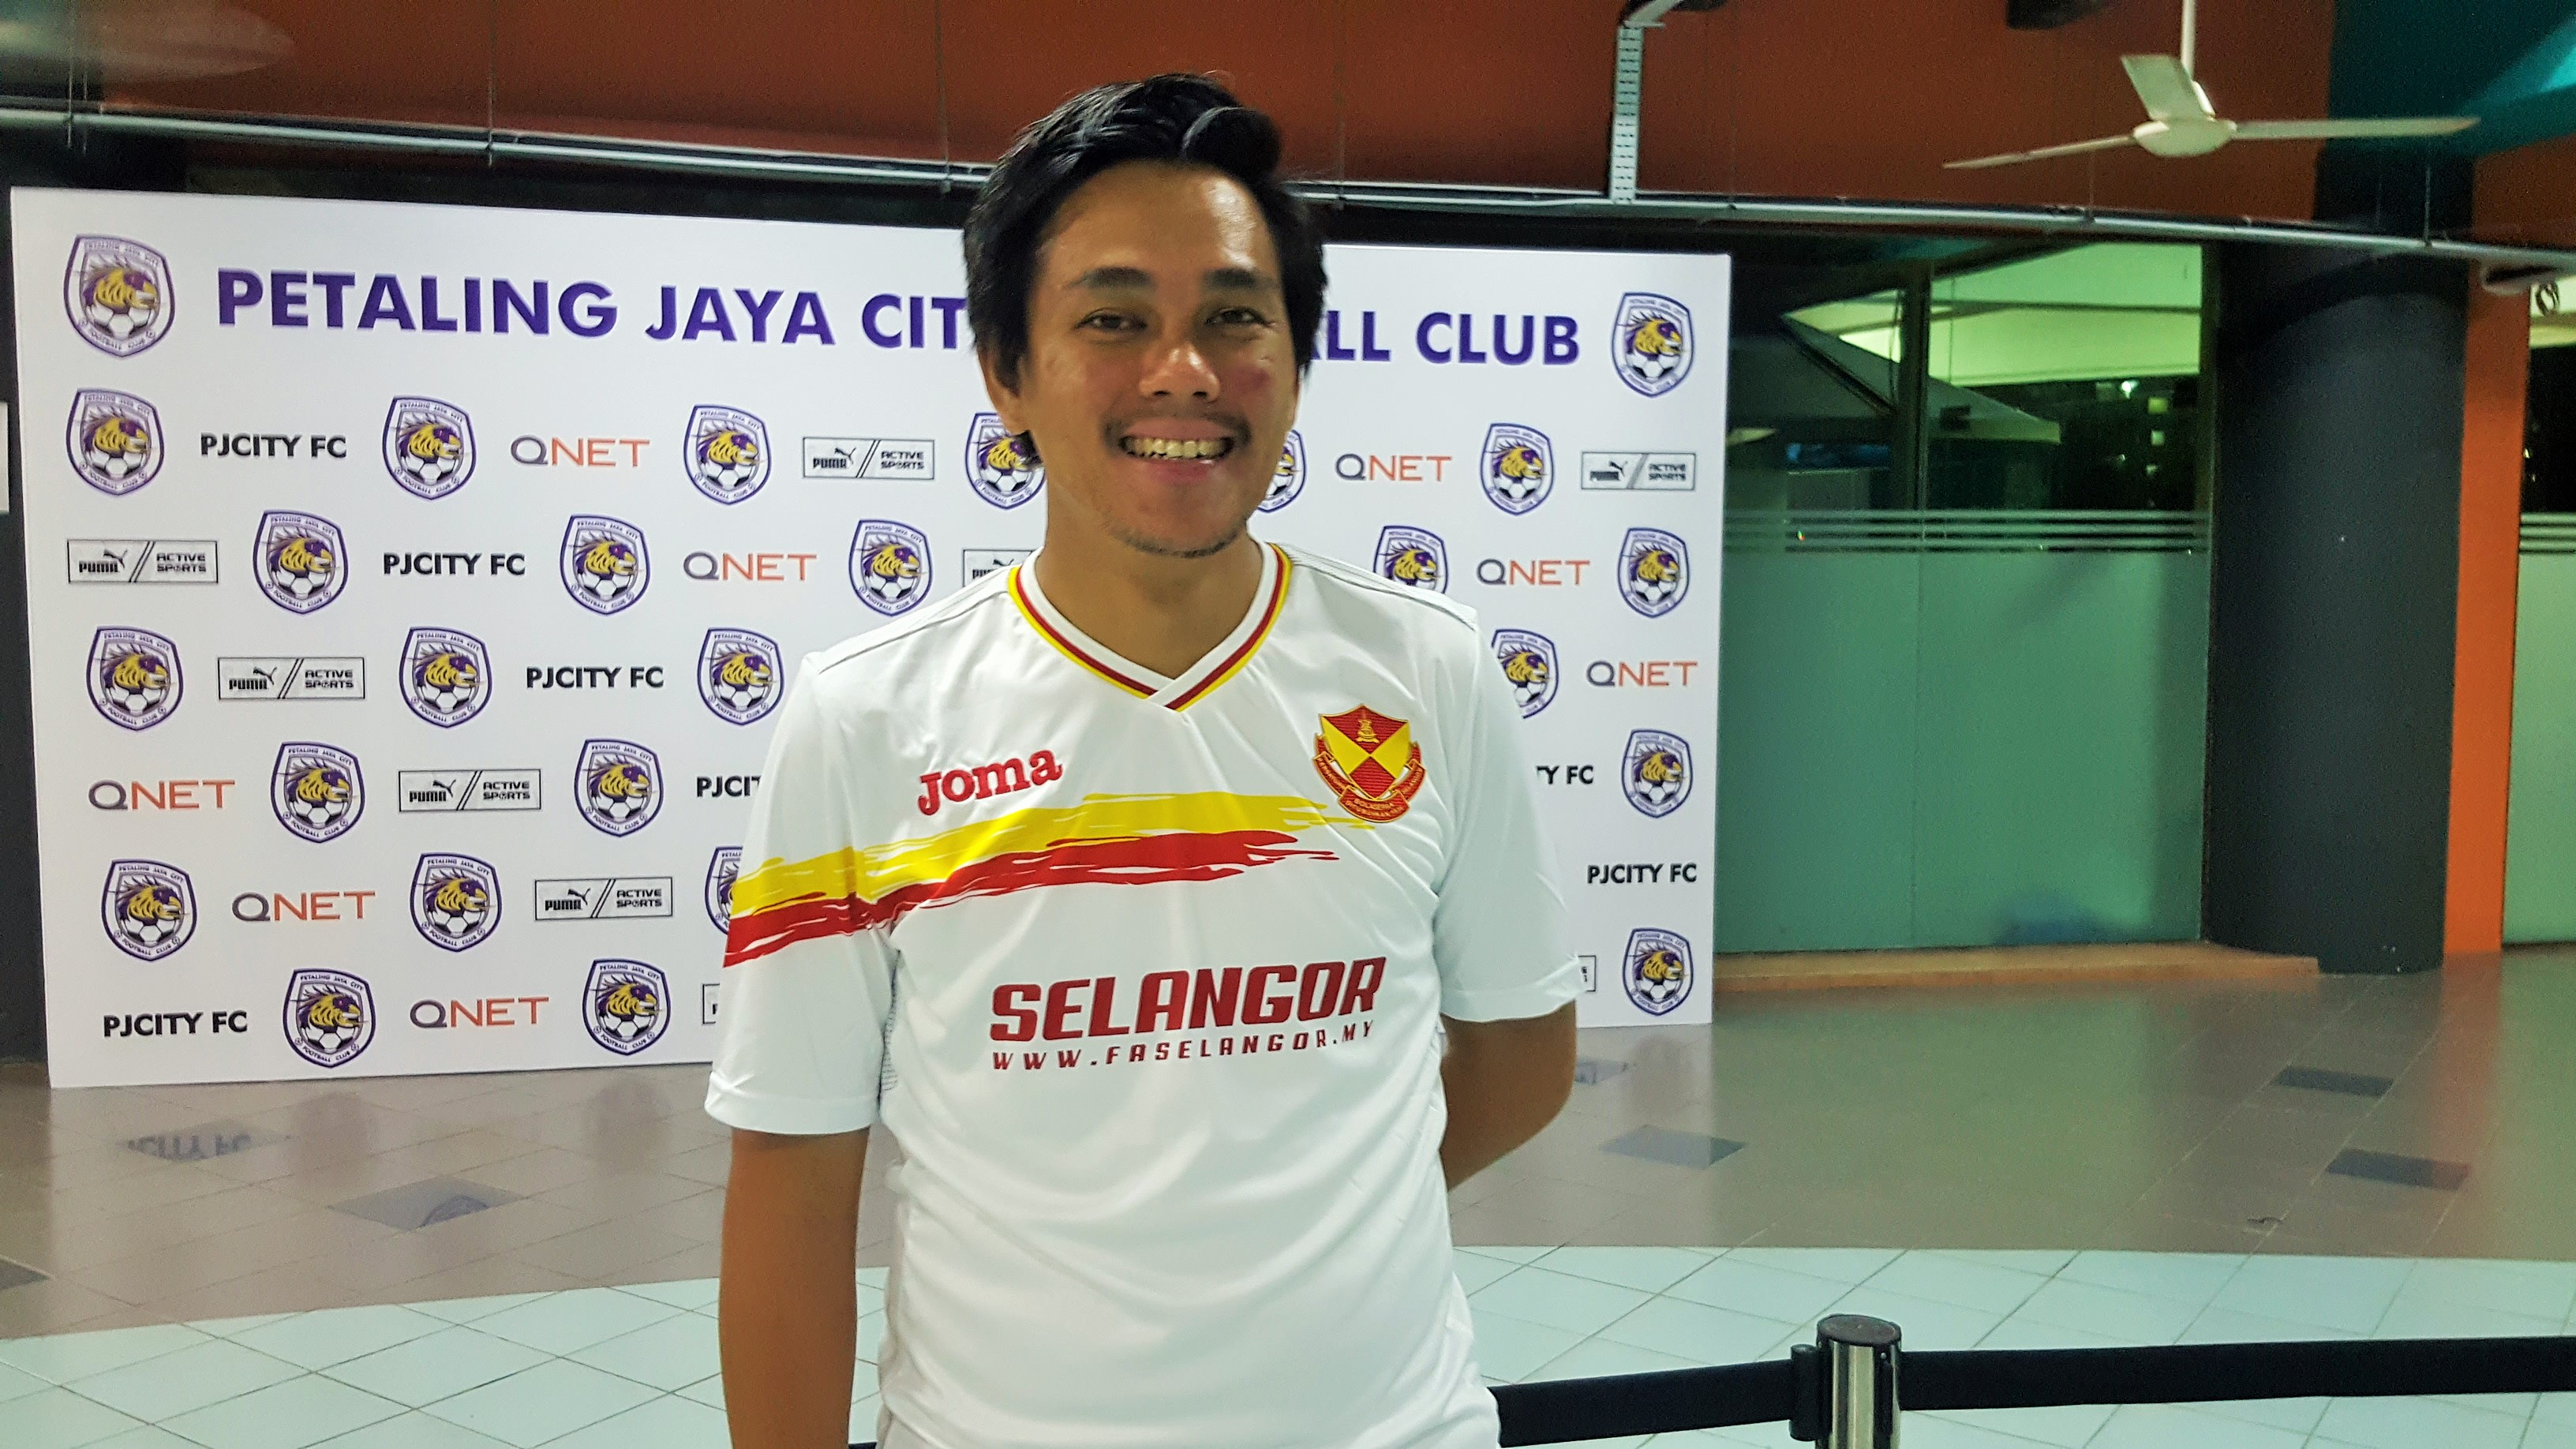 No Indonesian signing in near future for Selangor as they concentrate on local players as well as fanbase